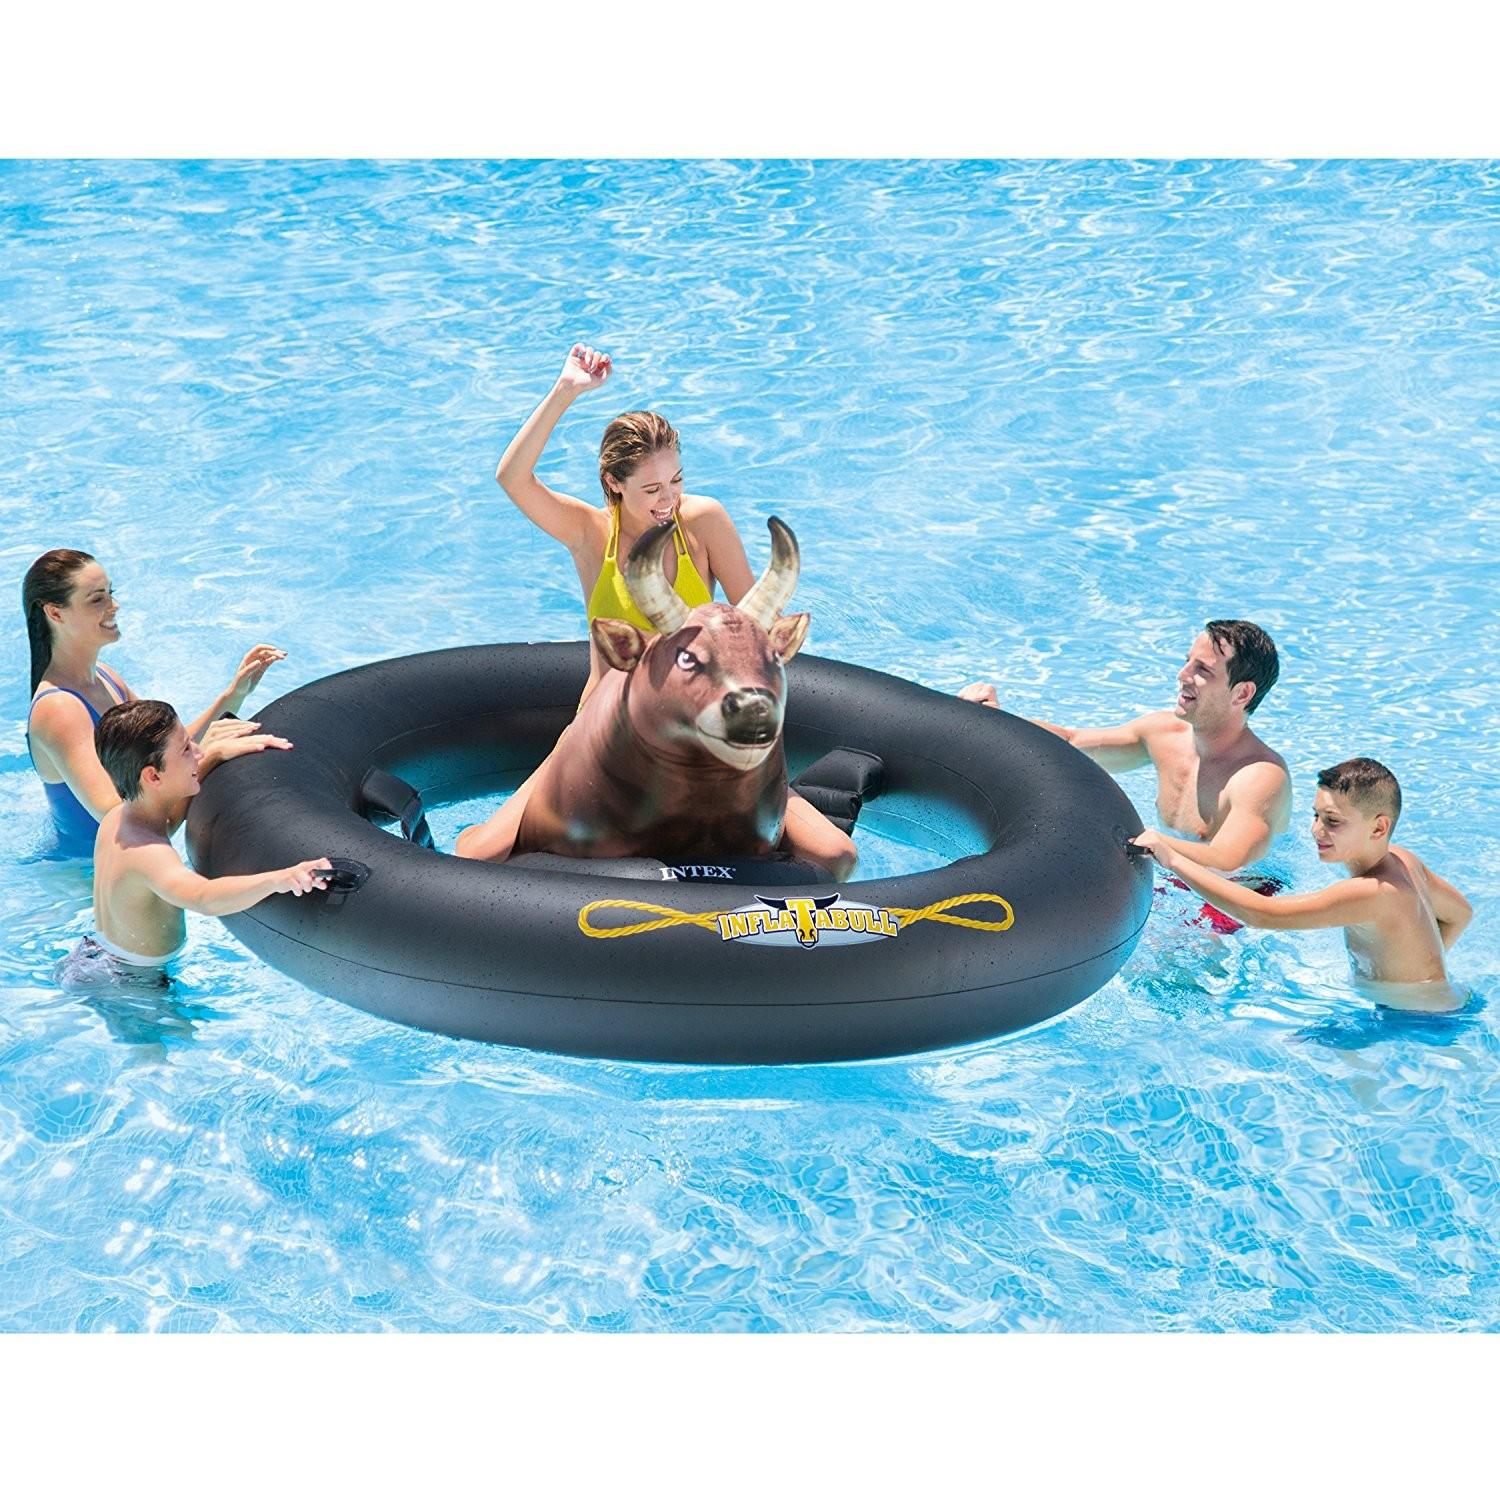 Best Pool Floats Fun Too